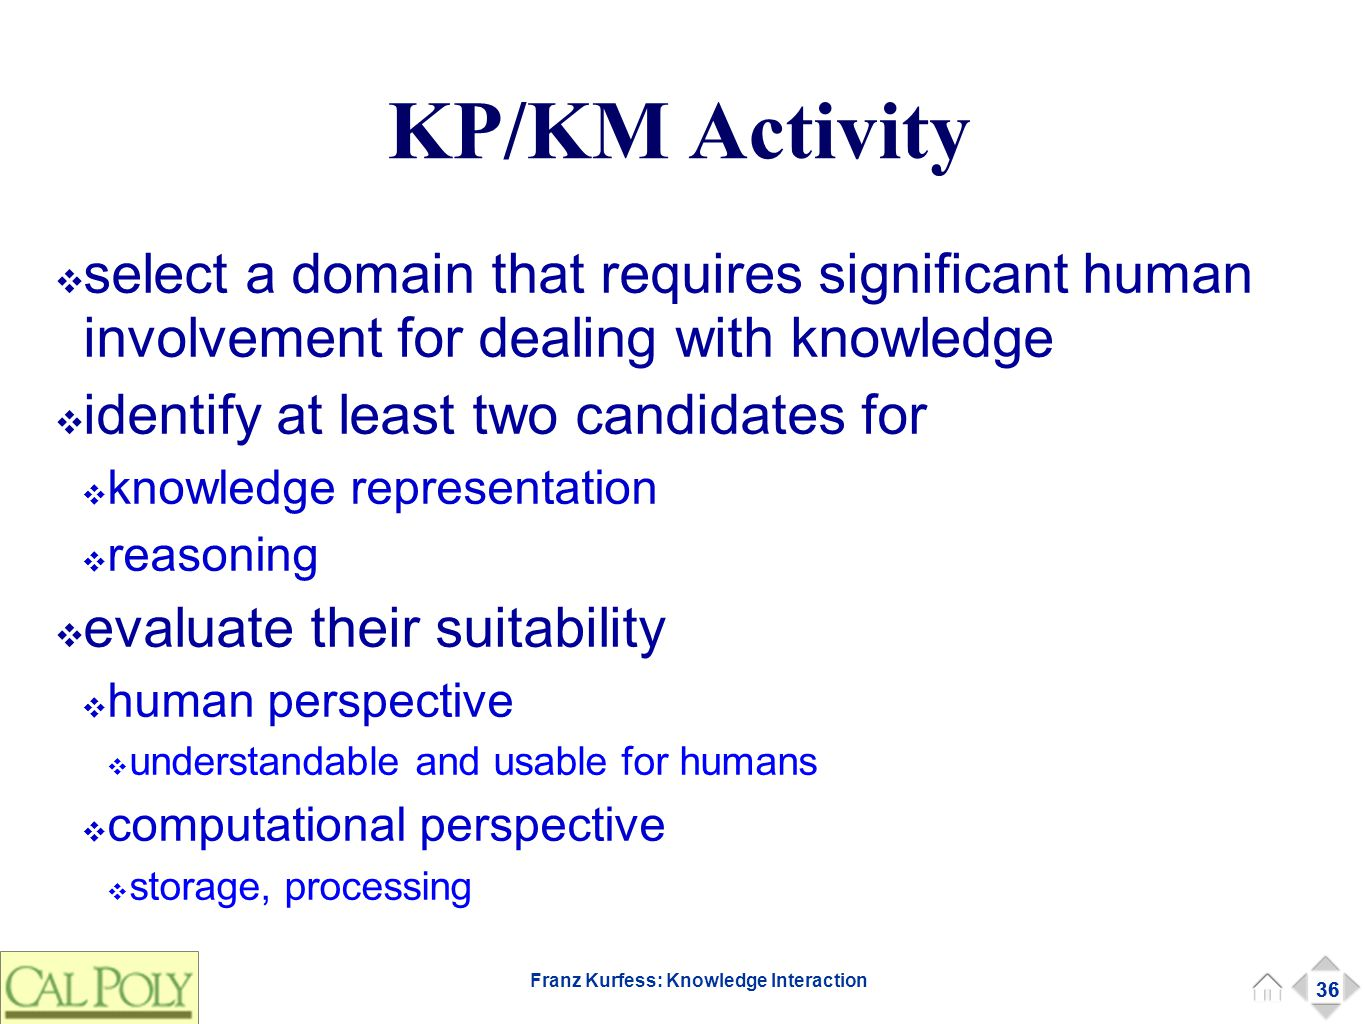 36 Franz Kurfess: Knowledge Interaction KP/KM Activity ❖ select a domain that requires significant human involvement for dealing with knowledge ❖ identify at least two candidates for ❖ knowledge representation ❖ reasoning ❖ evaluate their suitability ❖ human perspective ❖ understandable and usable for humans ❖ computational perspective ❖ storage, processing 36